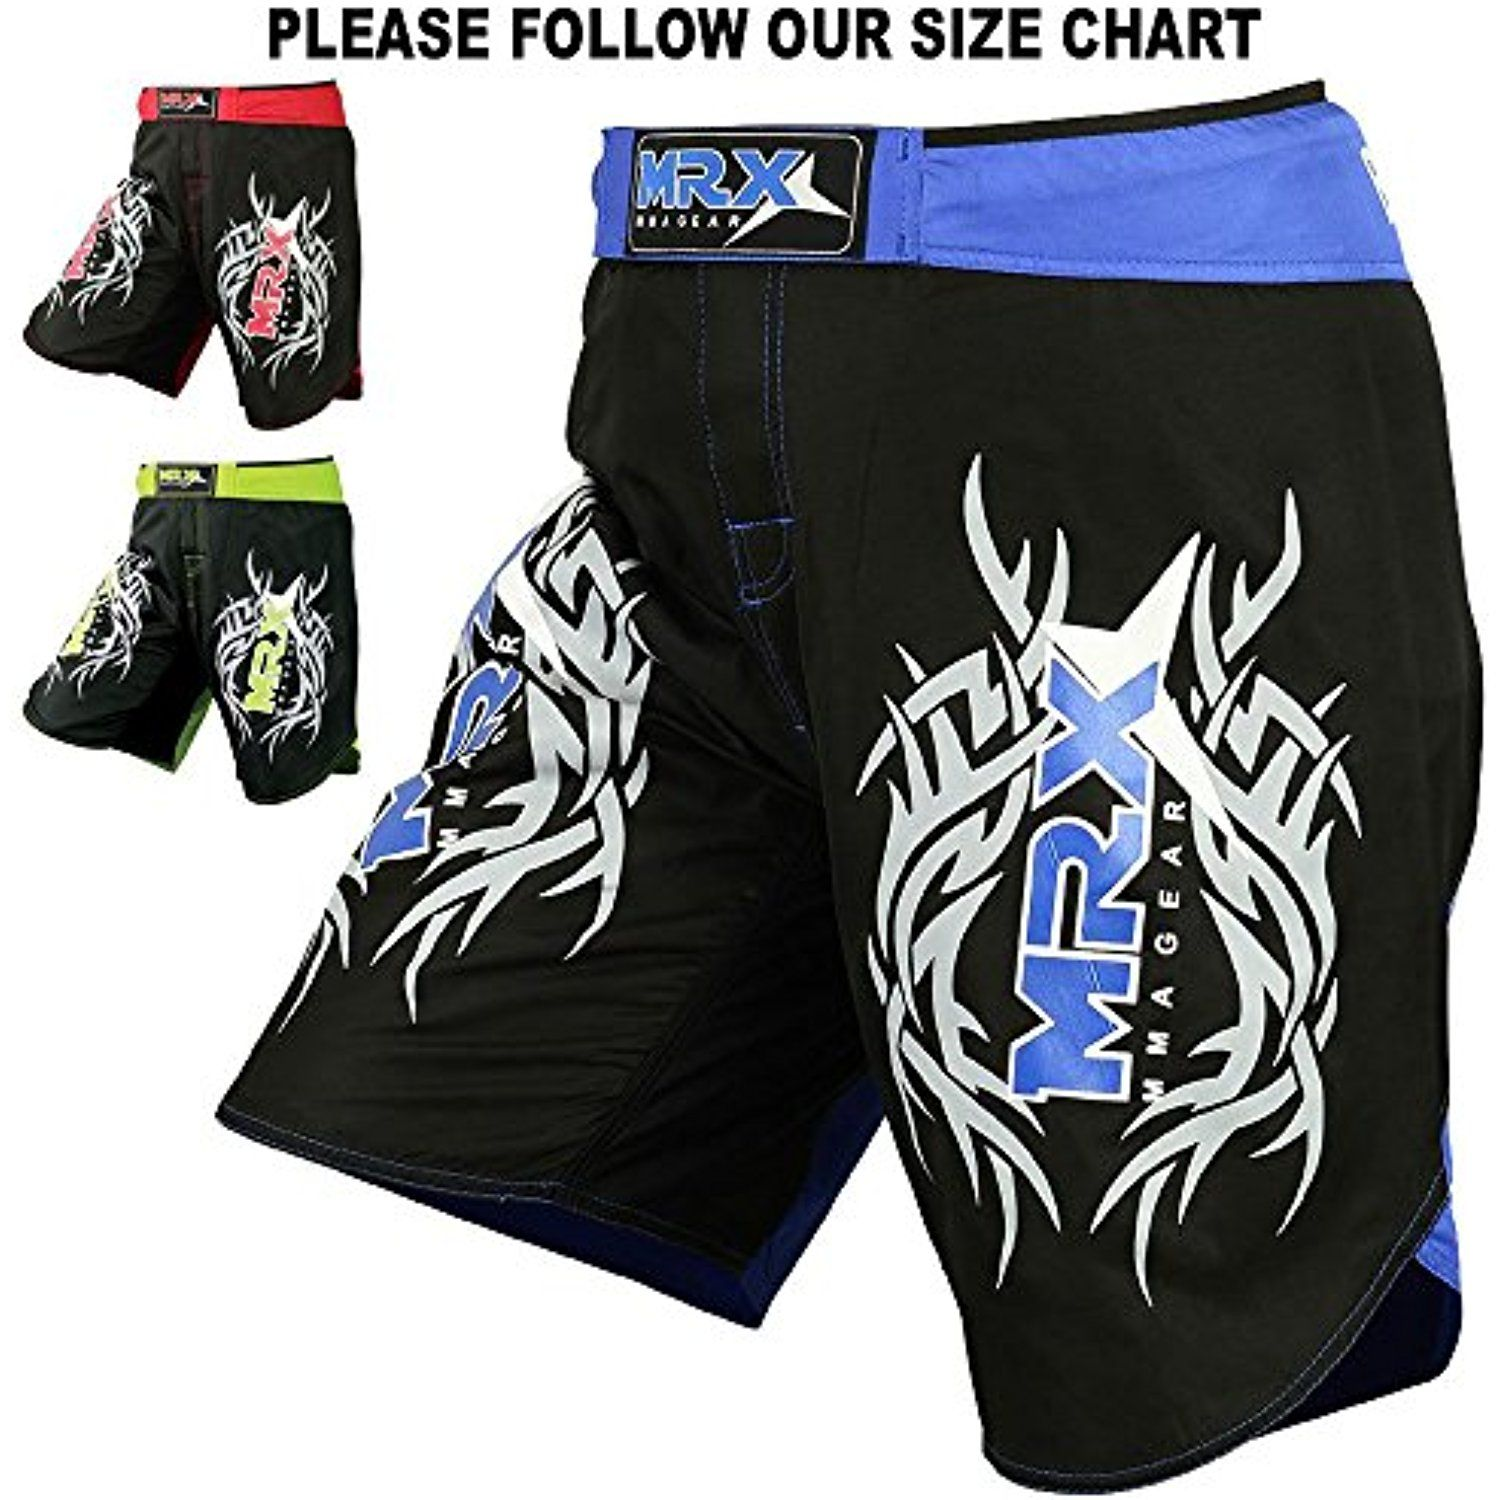 MENS Fighting Shorts UFC Grappling MMA Kick Boxing Muay Thai Martial Art Trunks